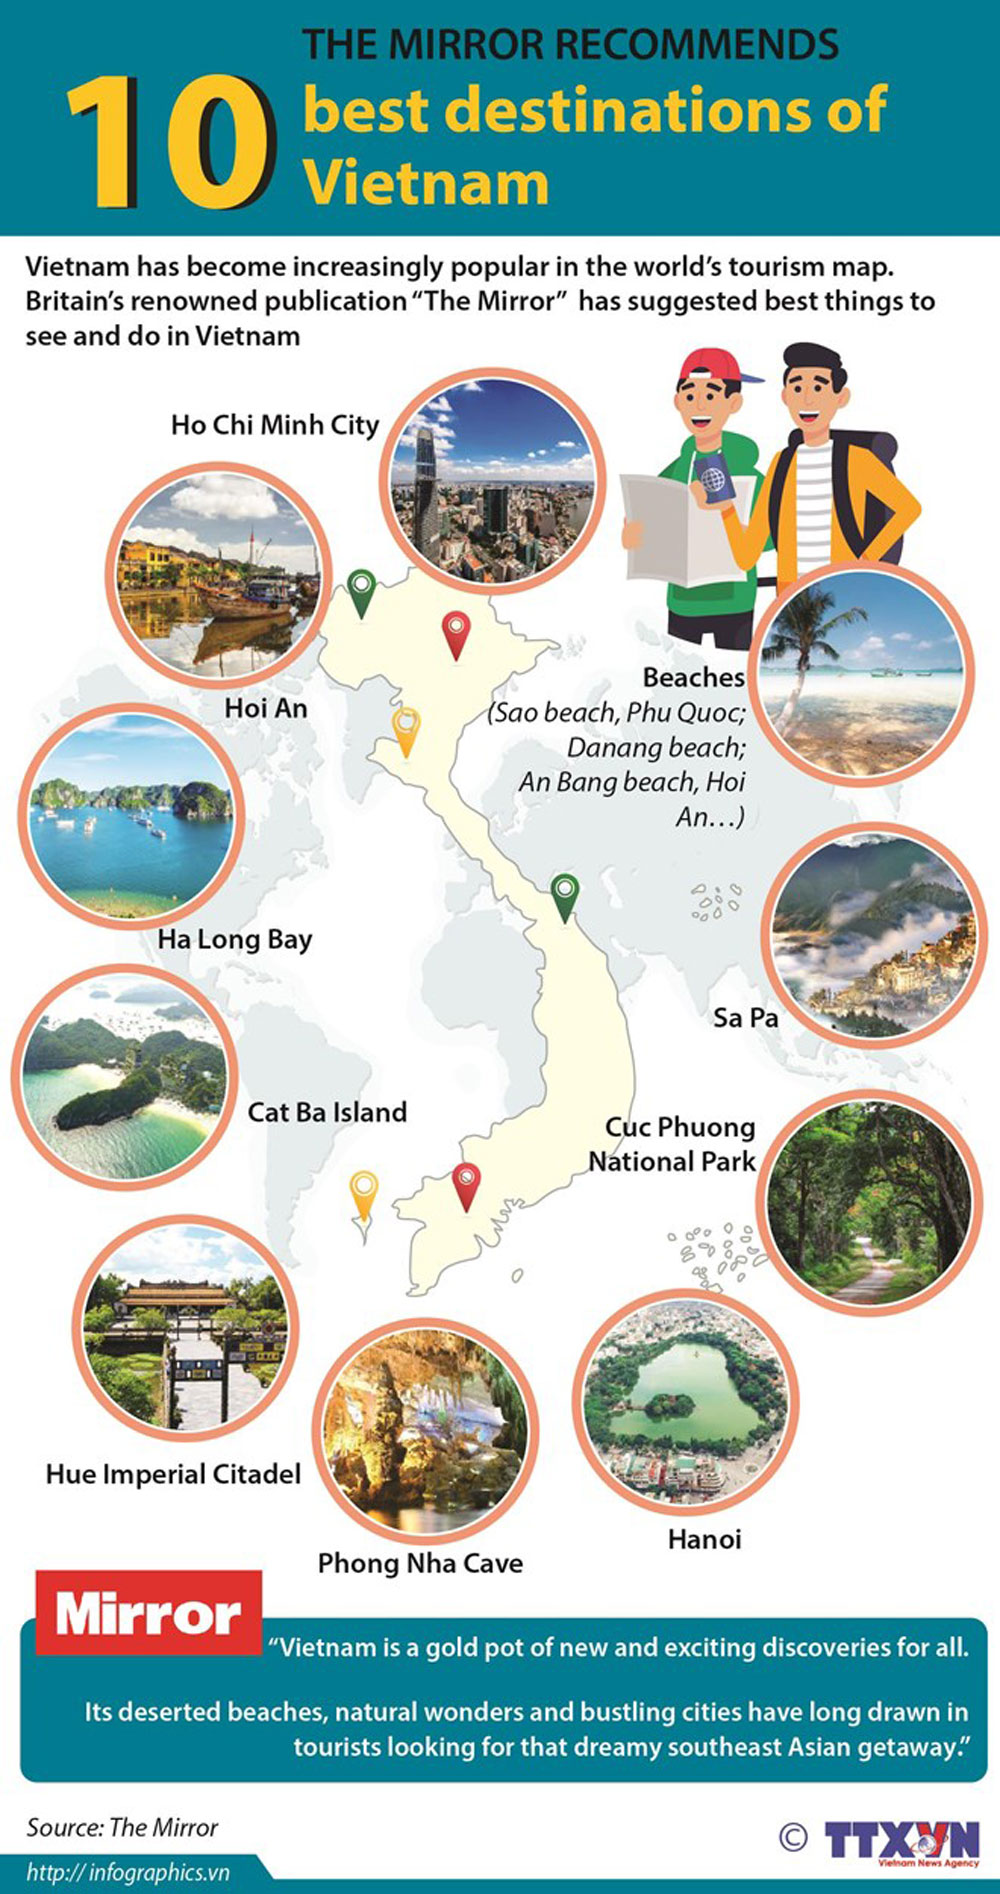 The Mirror, 10 best destinations, Vietnam, world tourism map, natural wonder, southeast asian gateway